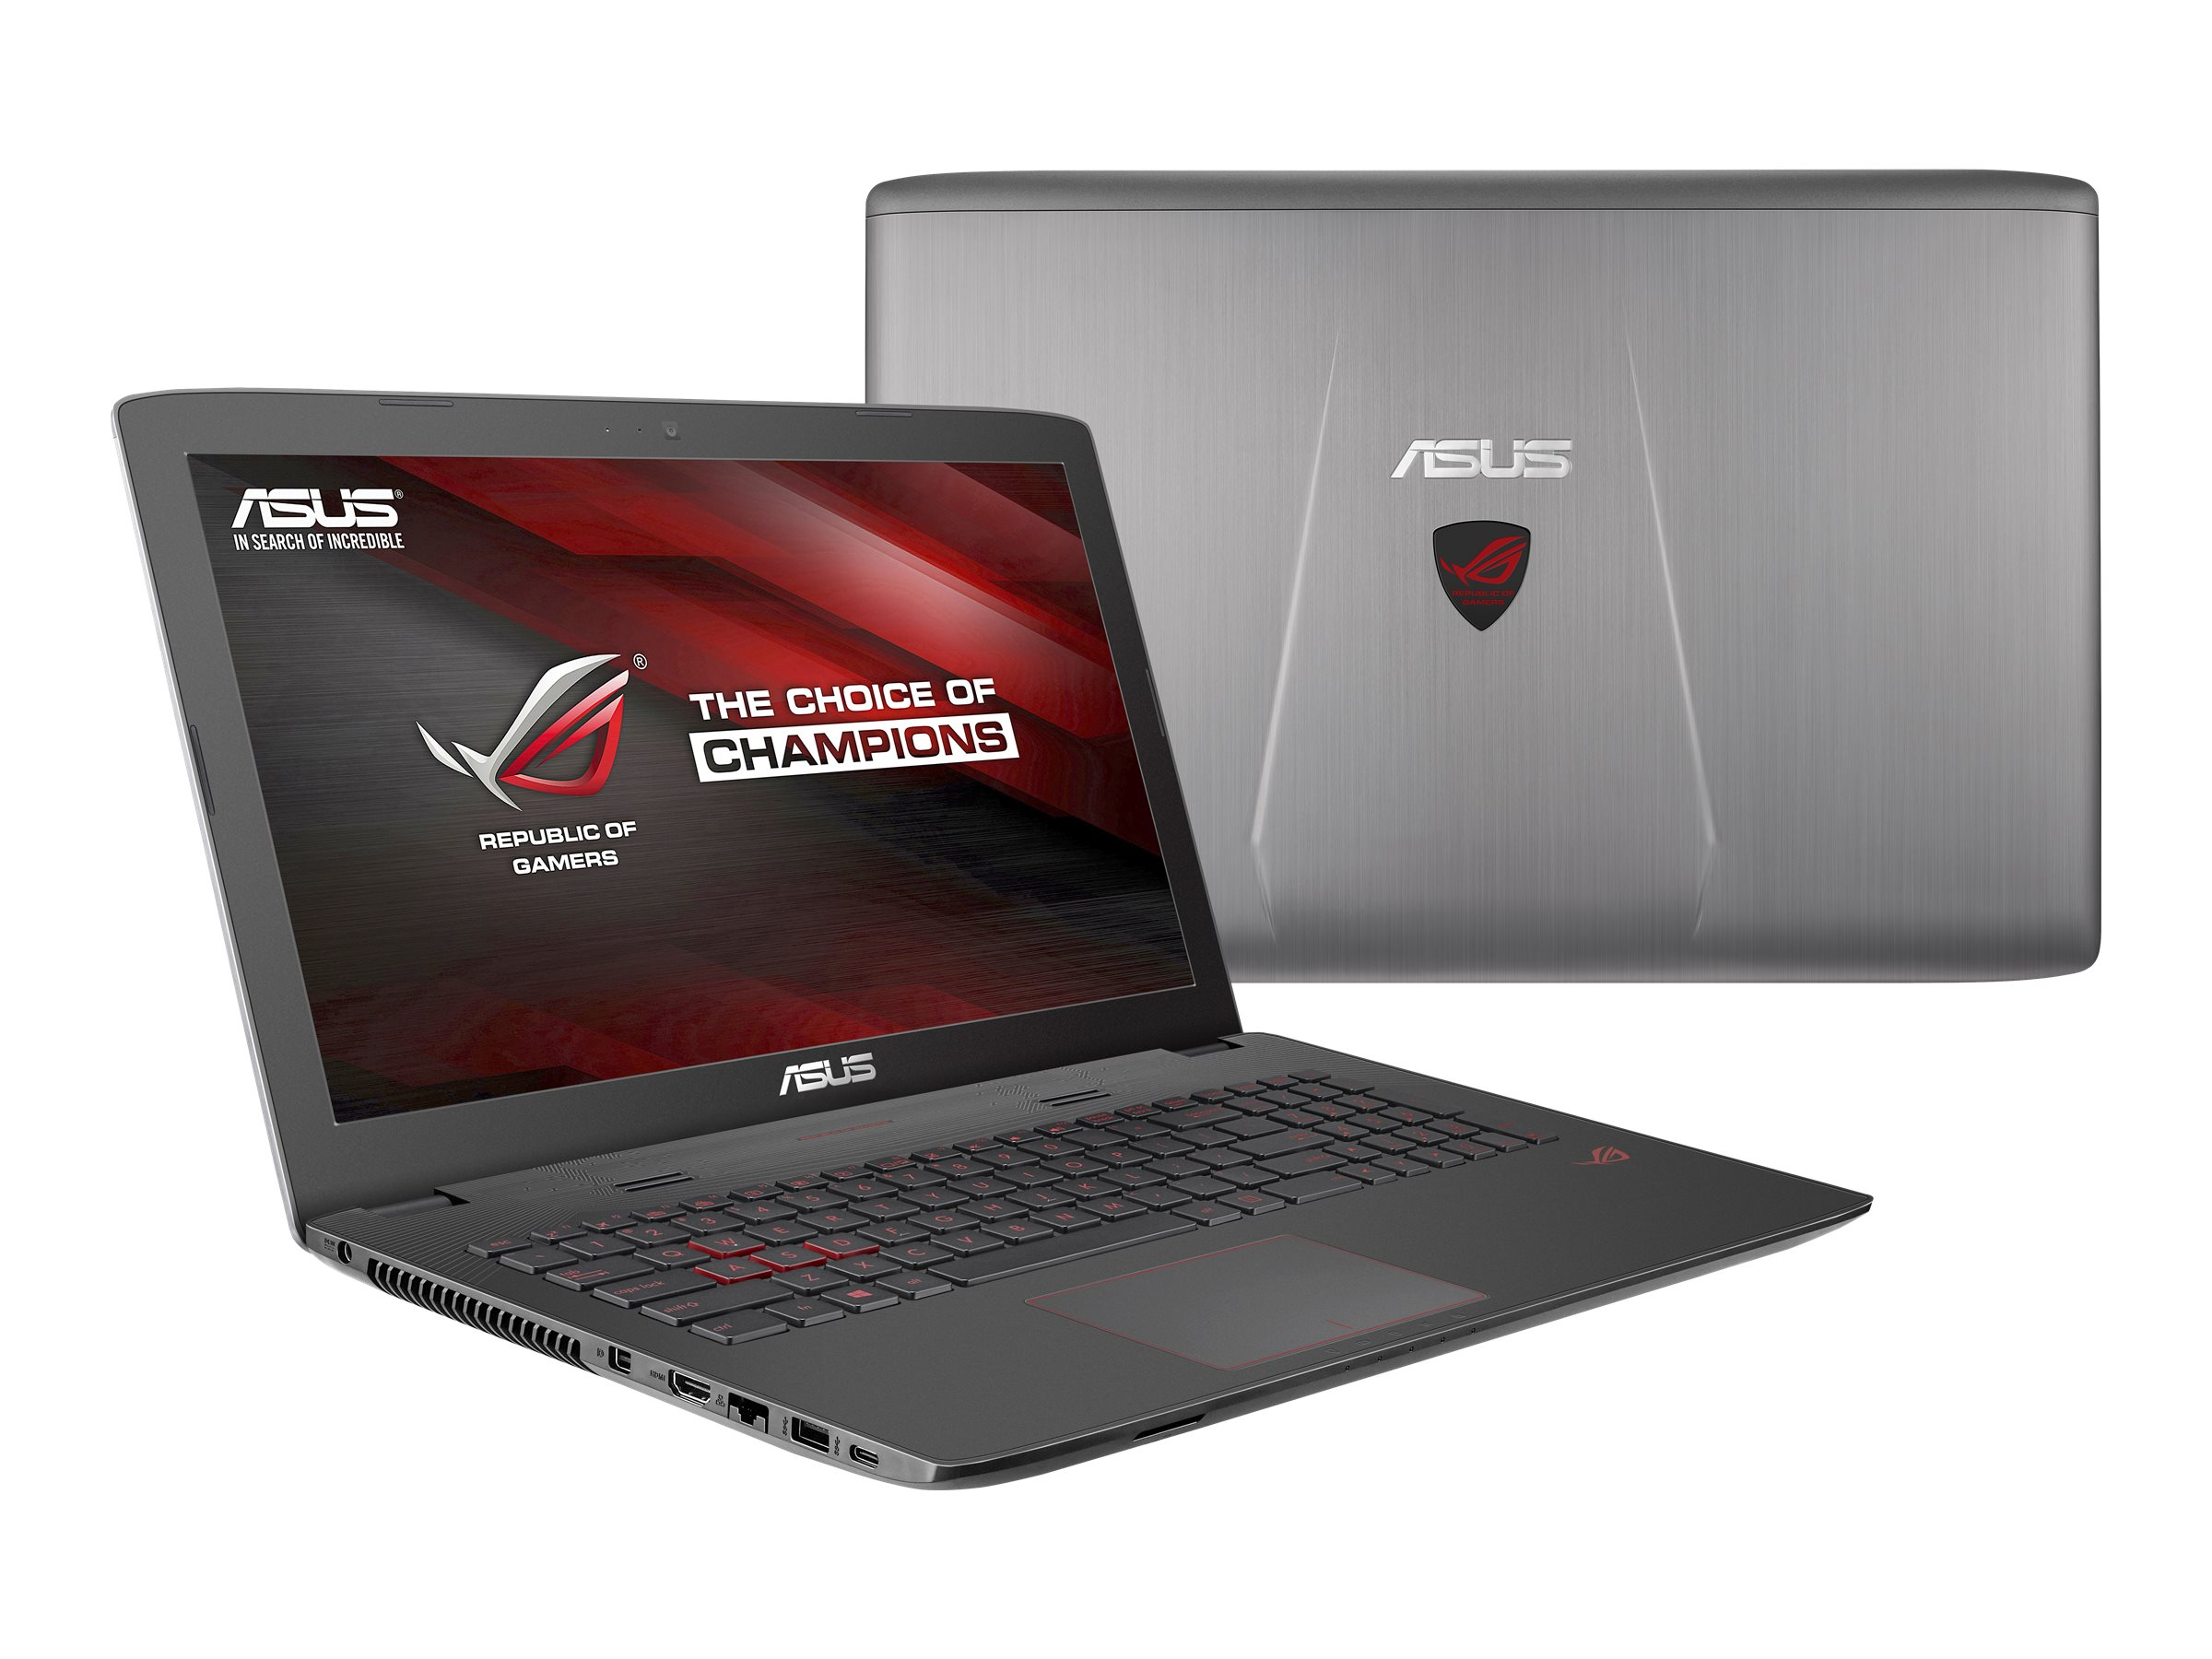 Asus GL752VW-DH74 Image 4